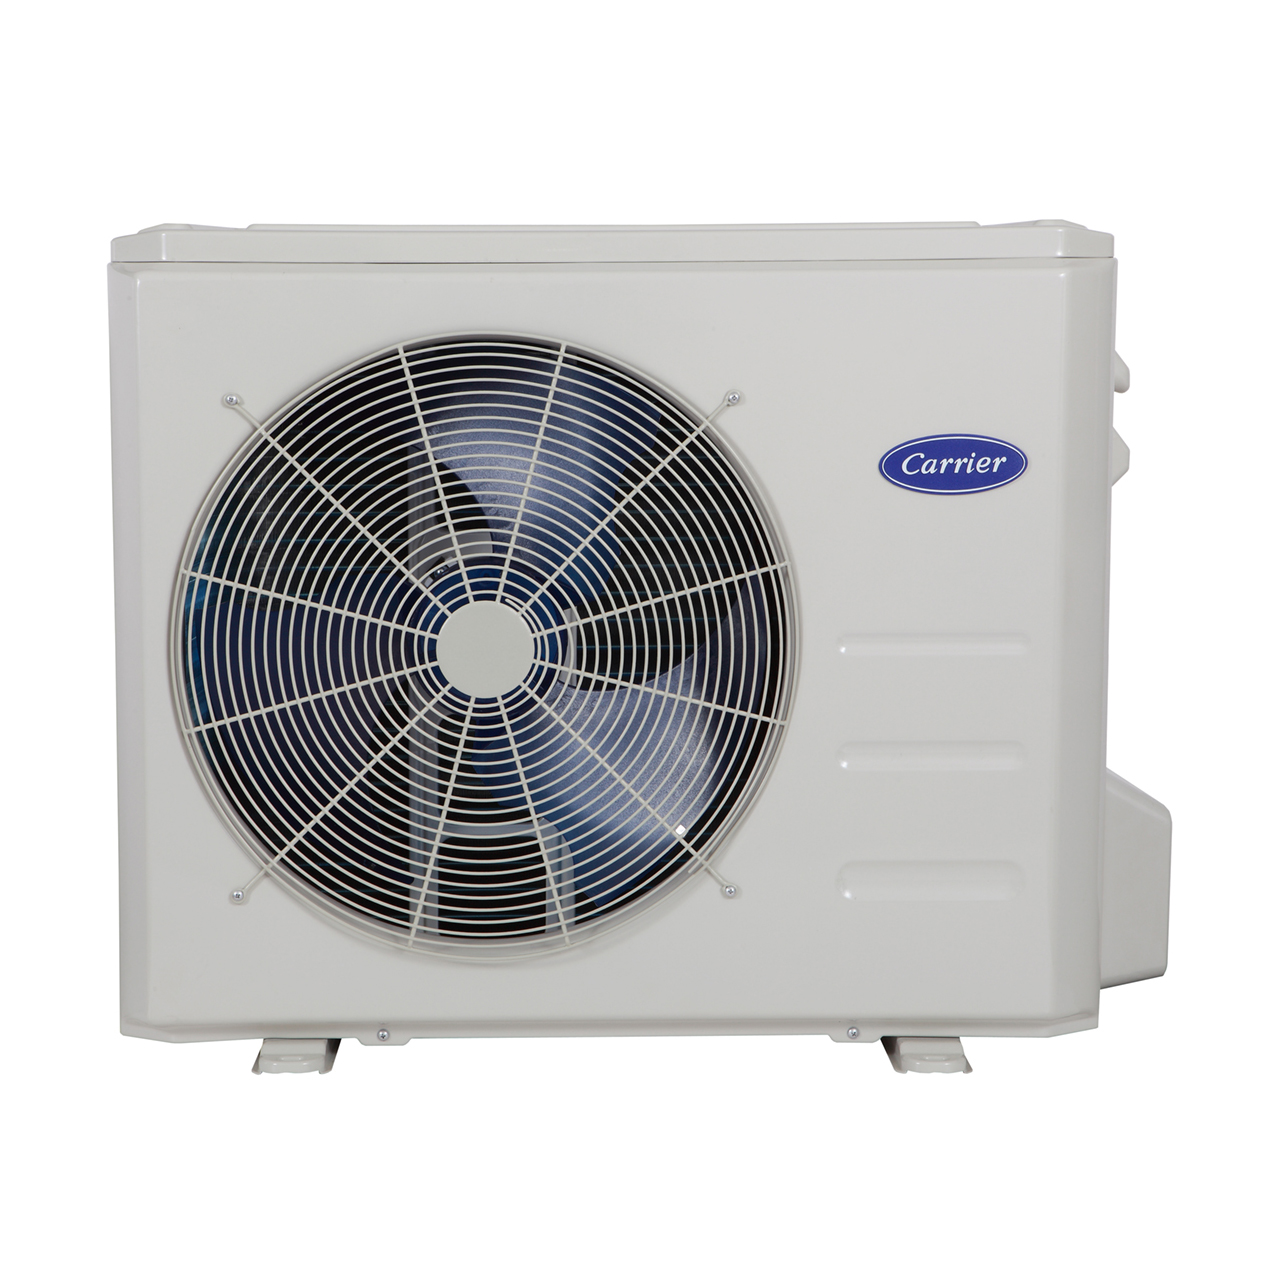 carrier-38mhrq-ductless-system-single-zone-heat-pump-unit